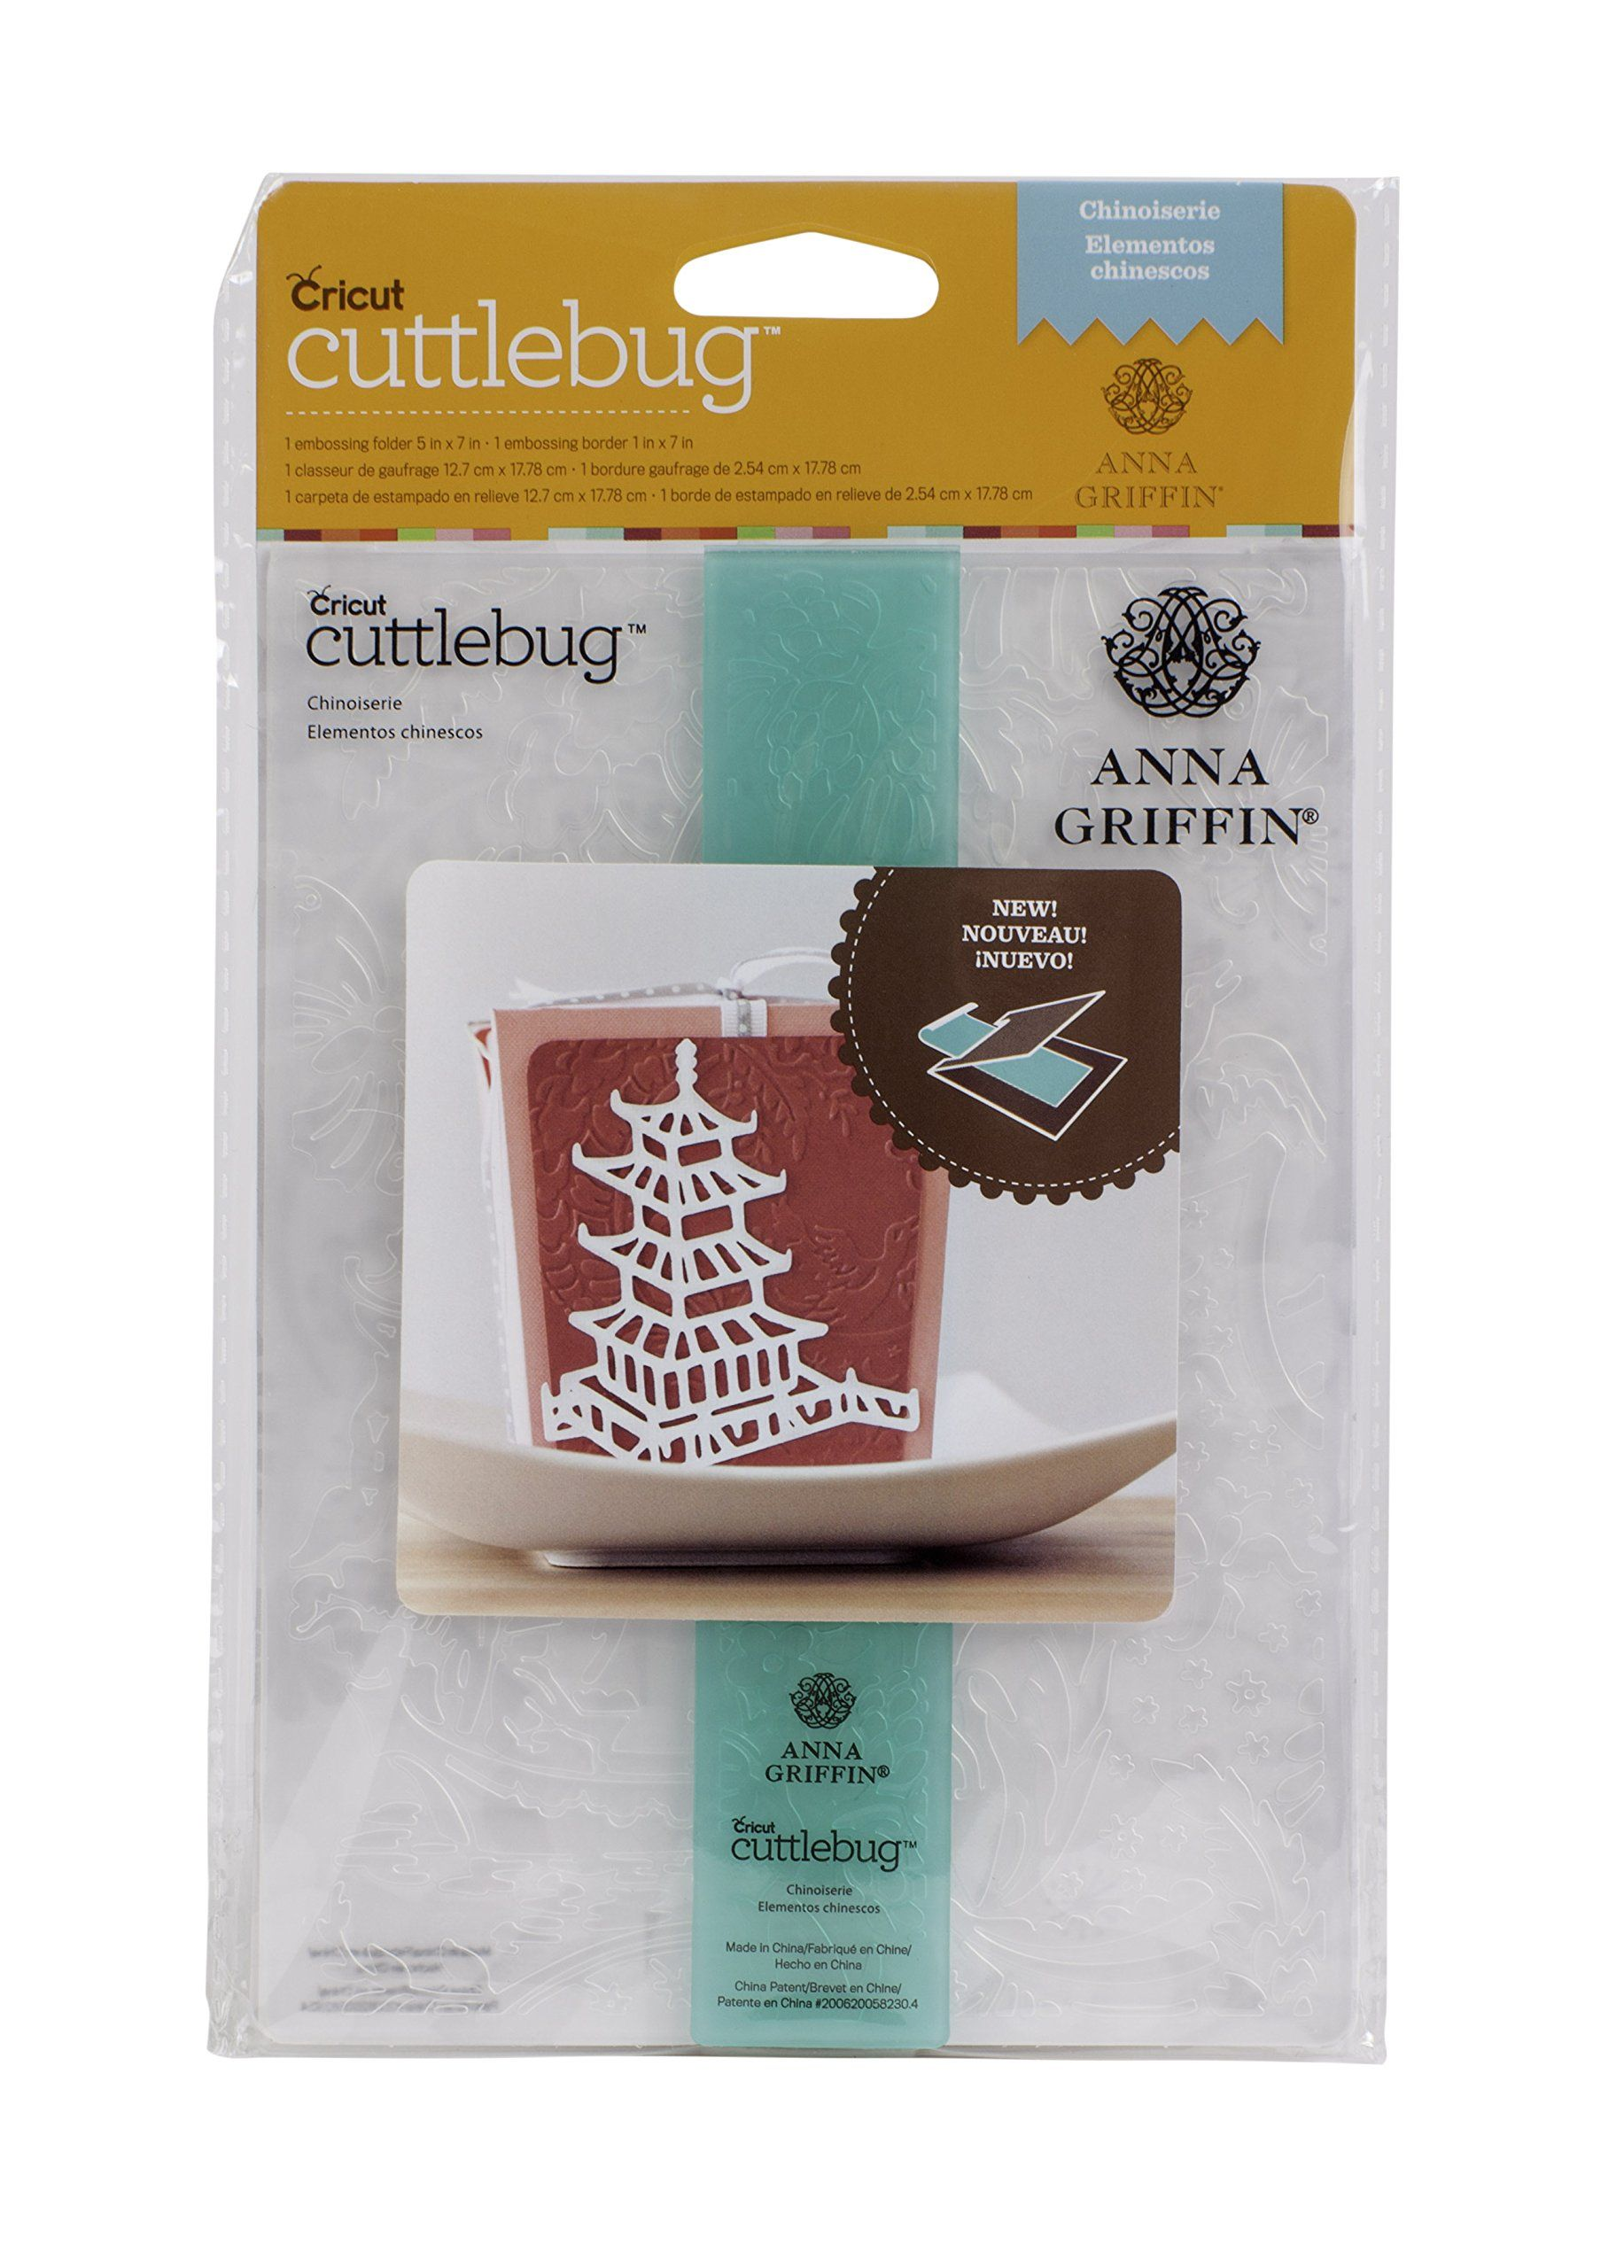 cuttlebug cricut cuttlebug embossing folder and border 5 by 7 inch chinoiserie